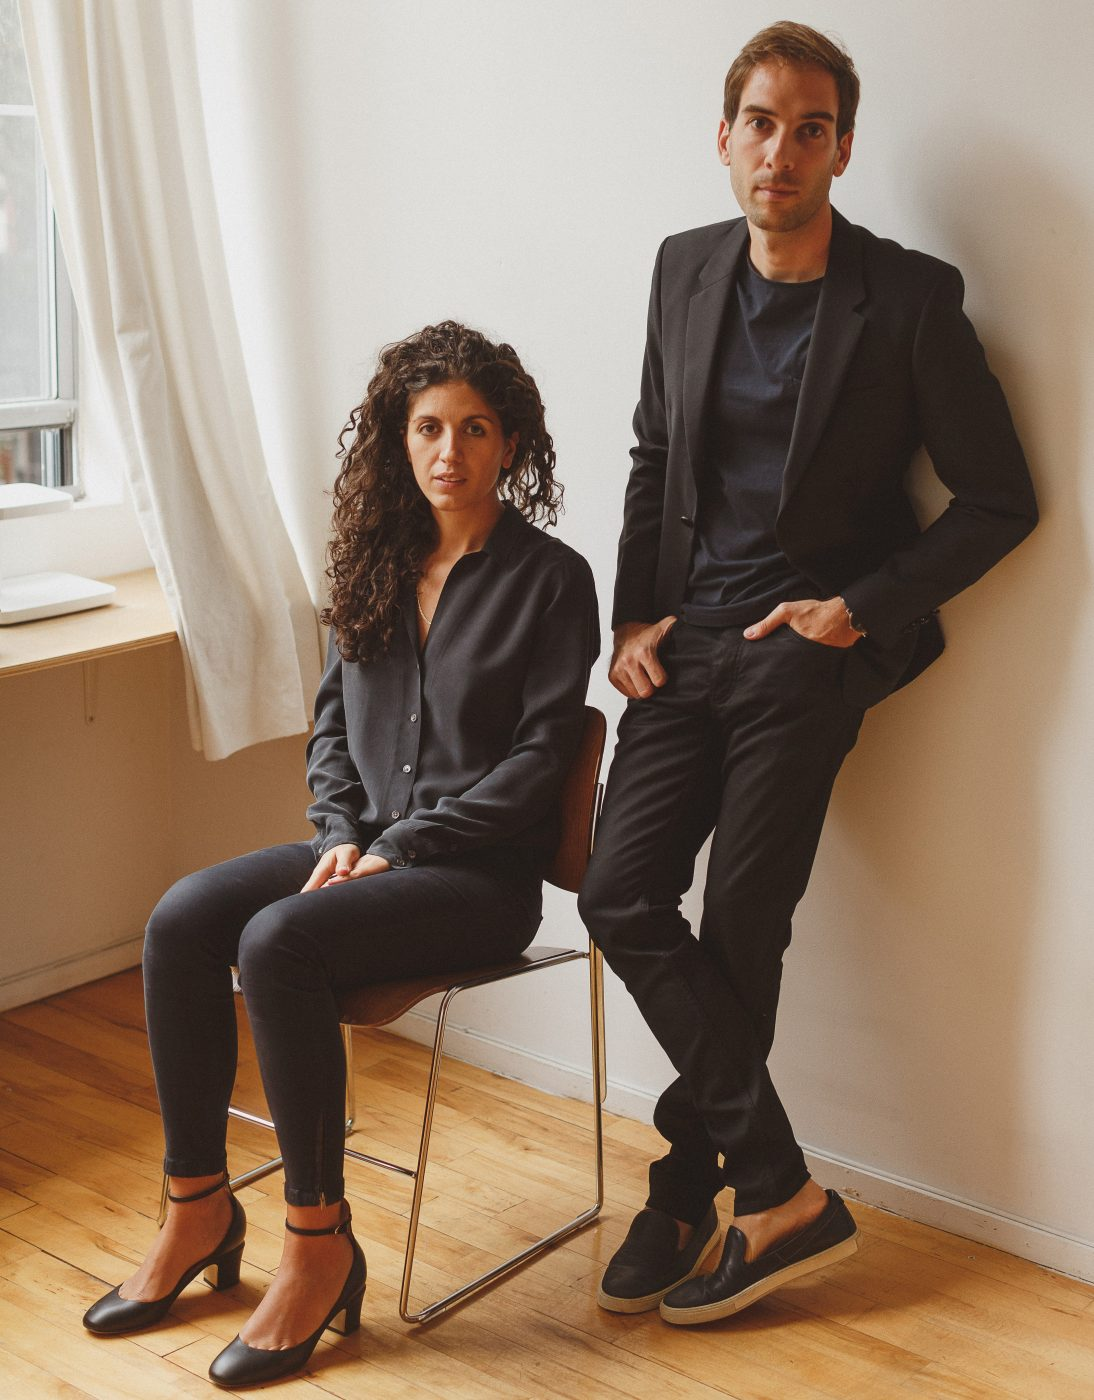 Portrait of Eleni Petaloti and Leonidas Trampoukis, the duo behind Objects of Common Interest